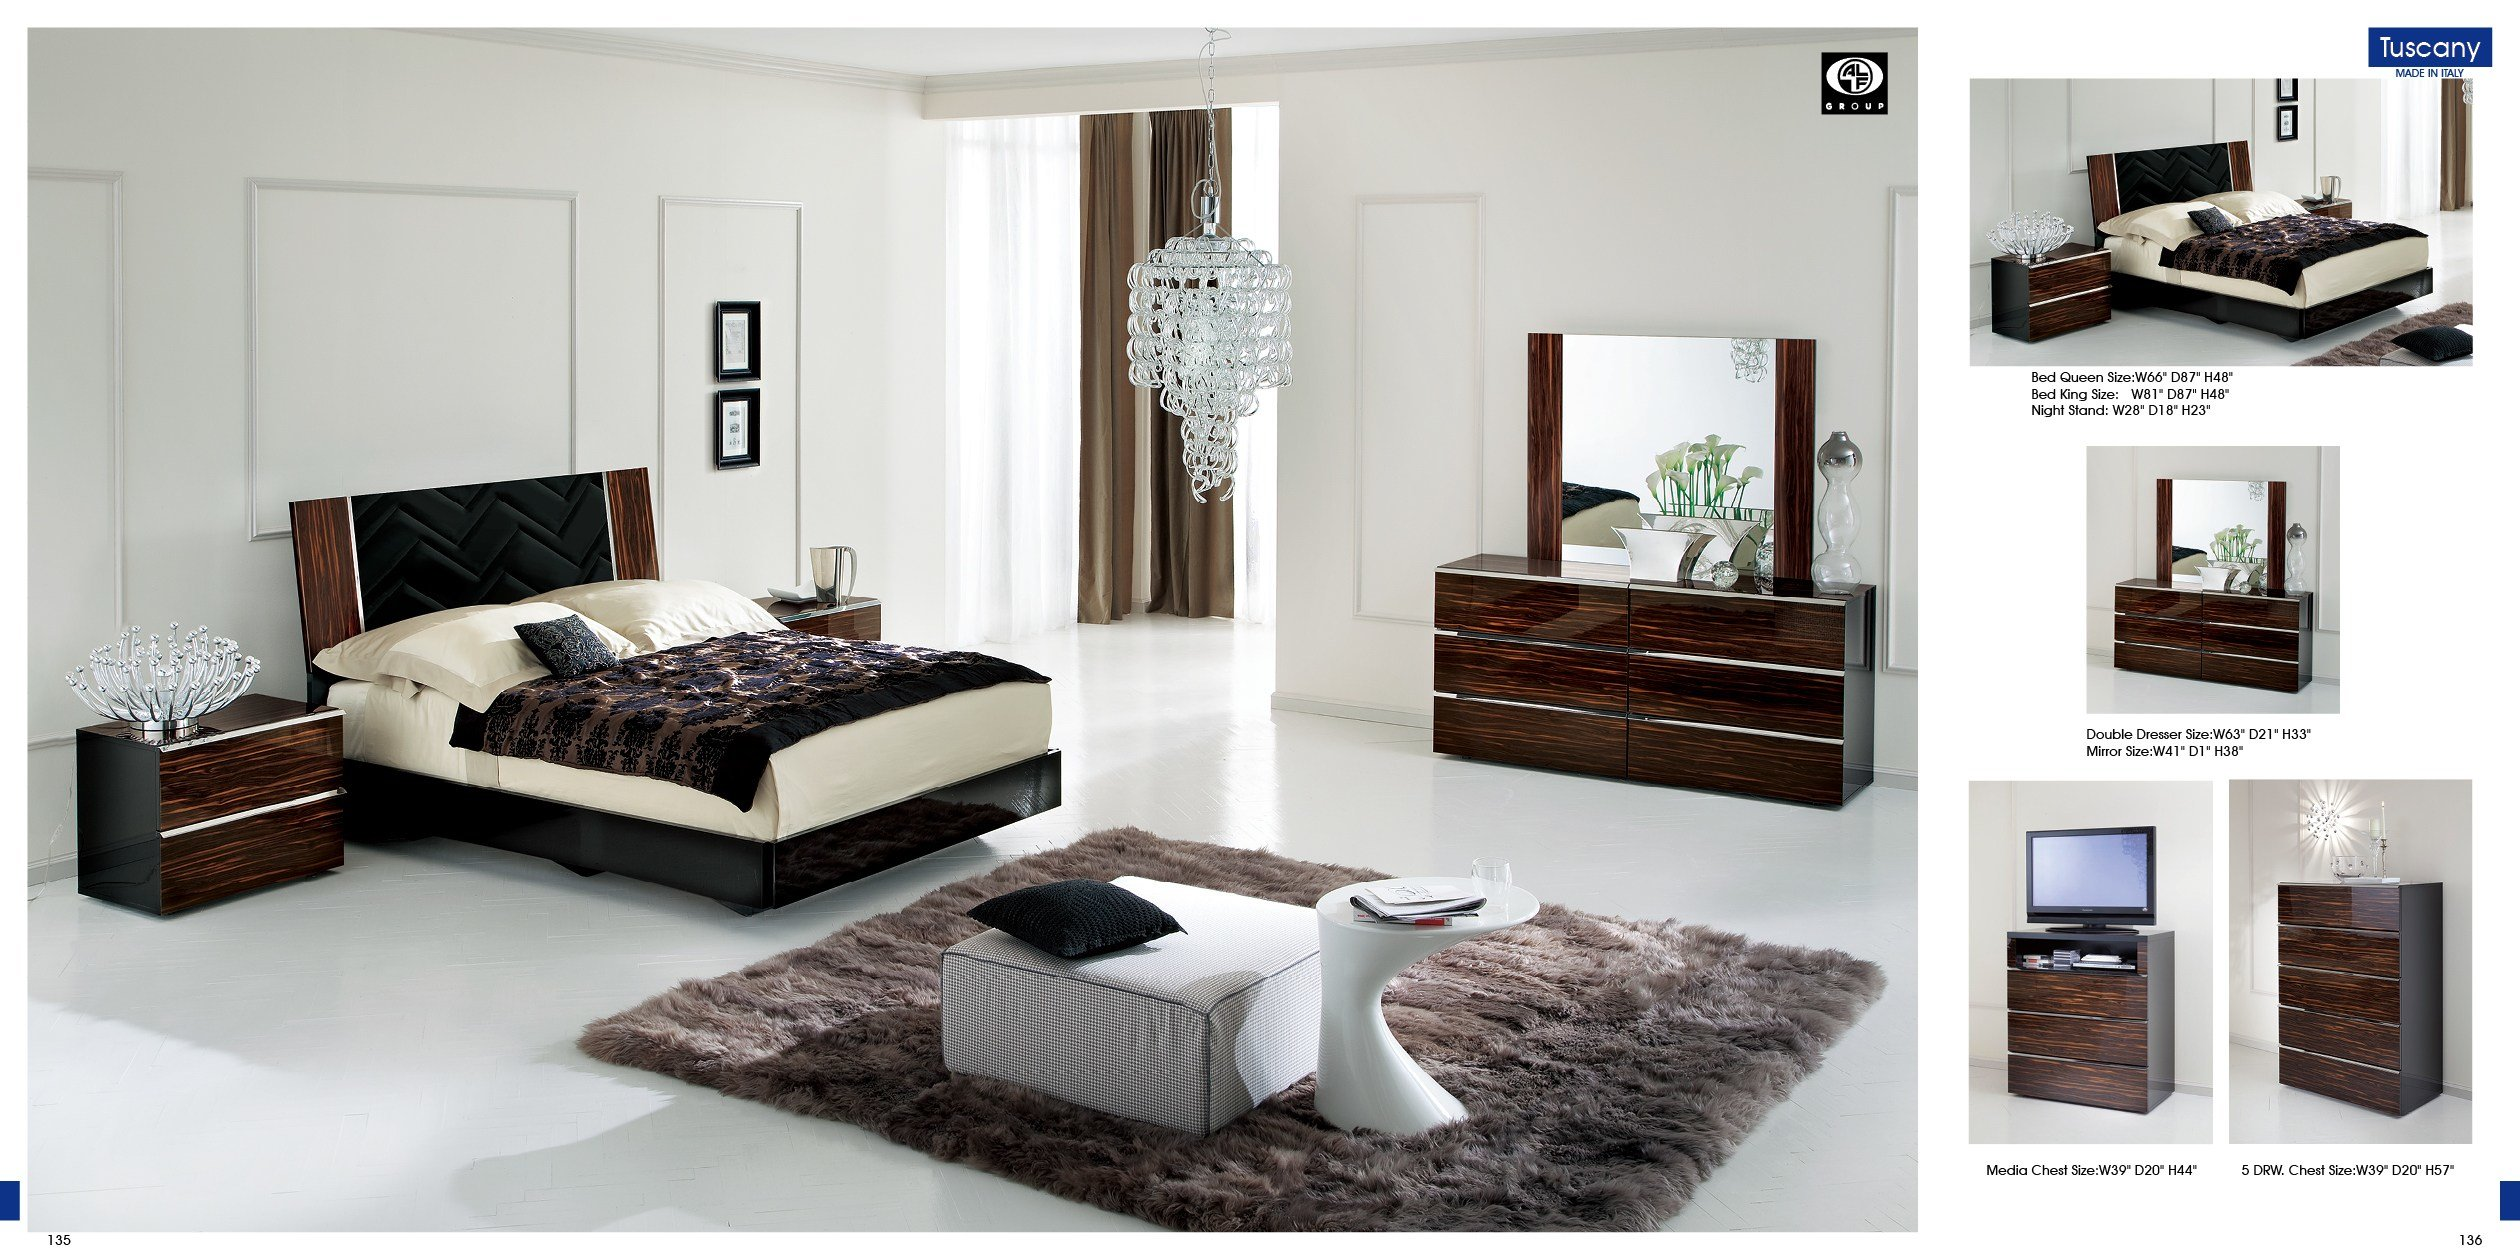 Best Great Selection Of Modern Bedroom Furniture Khabars Net With Pictures